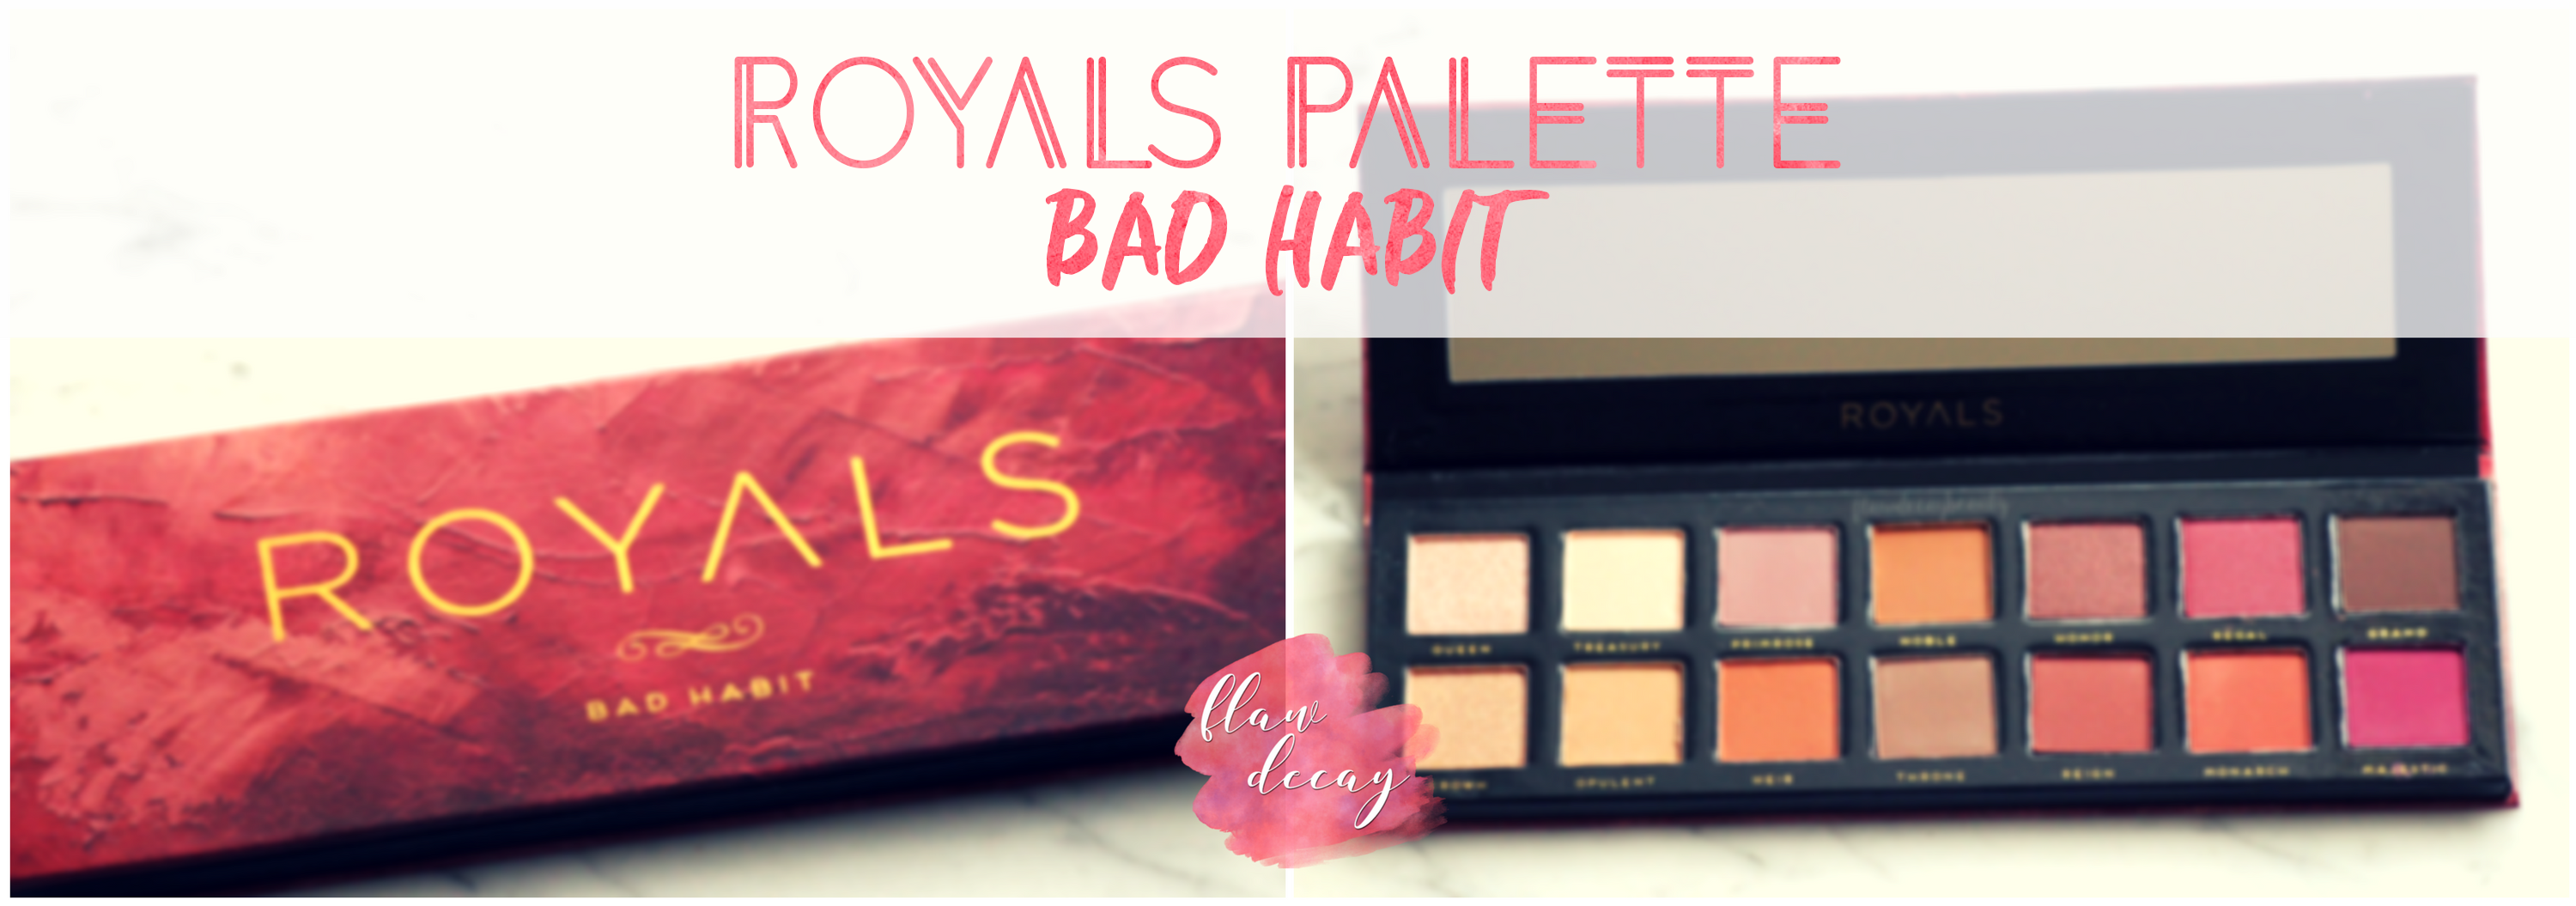 Royals Palette – Bad Habit (Hush Beauty)